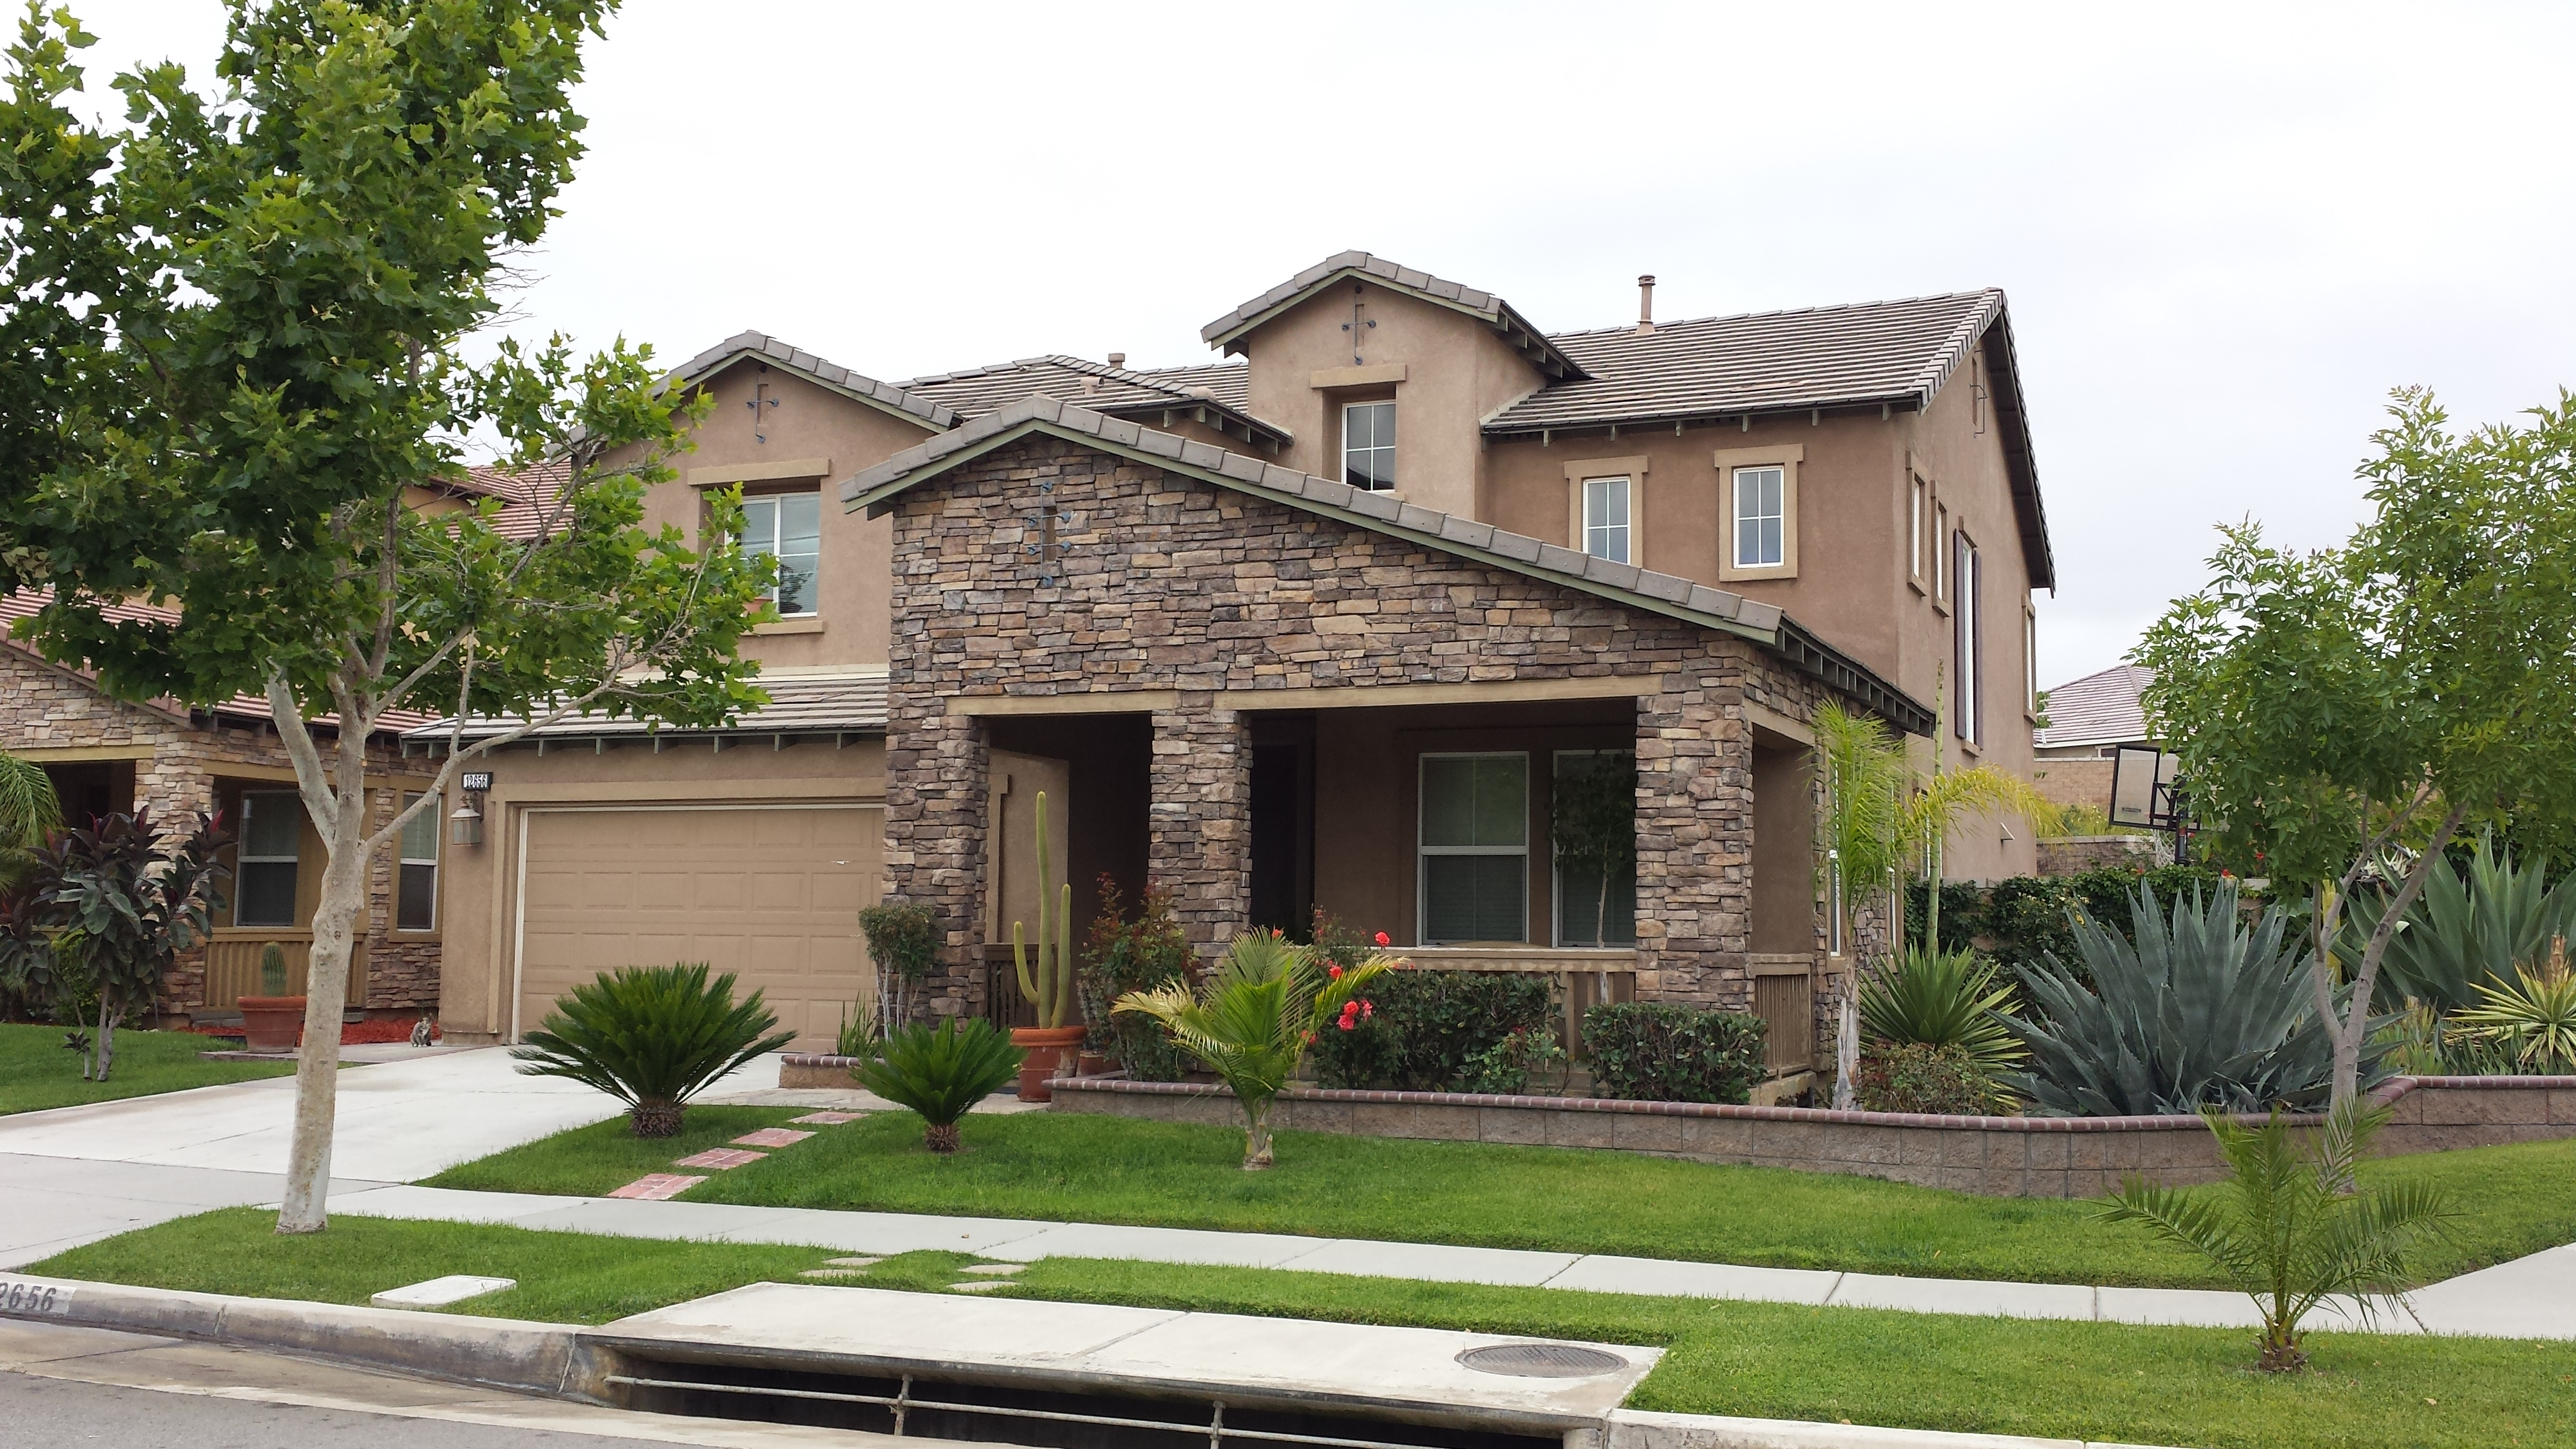 New Victoria Gardens Listing in Rancho Cucamonga